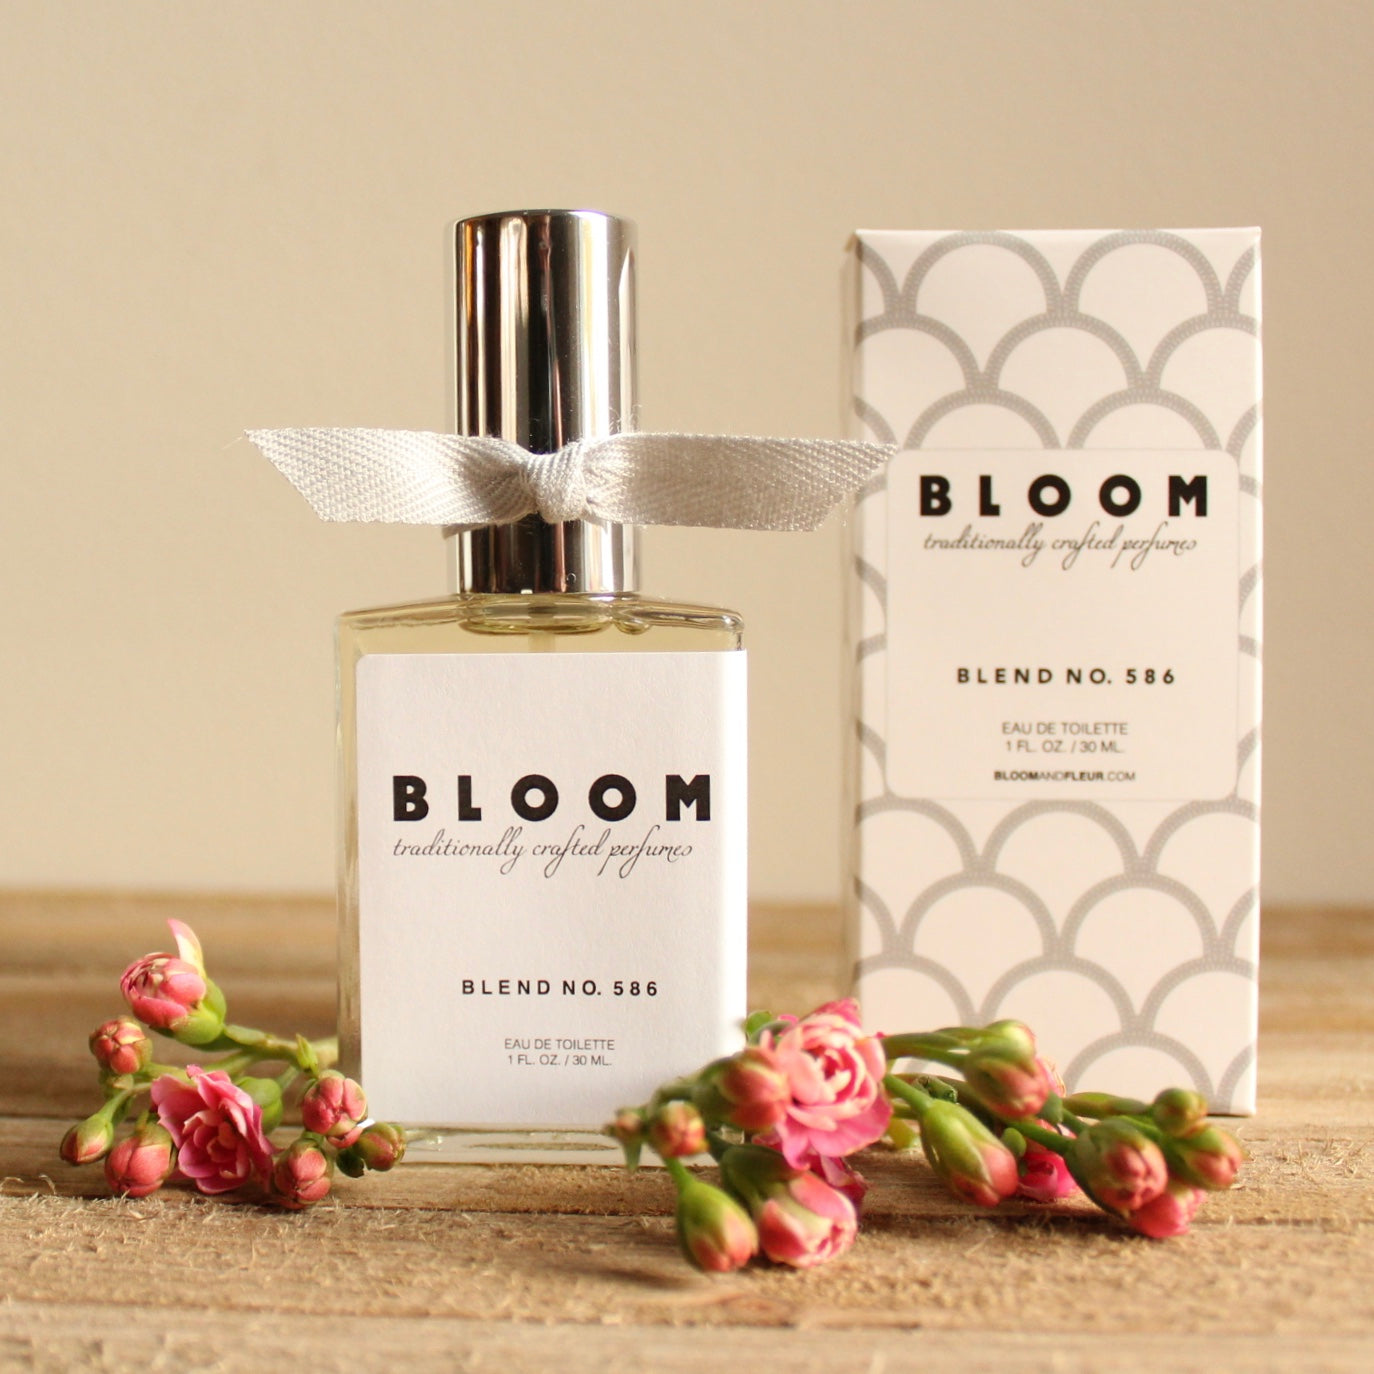 Bloom Perfume - Blend no. 586 (PRE-ORDER)